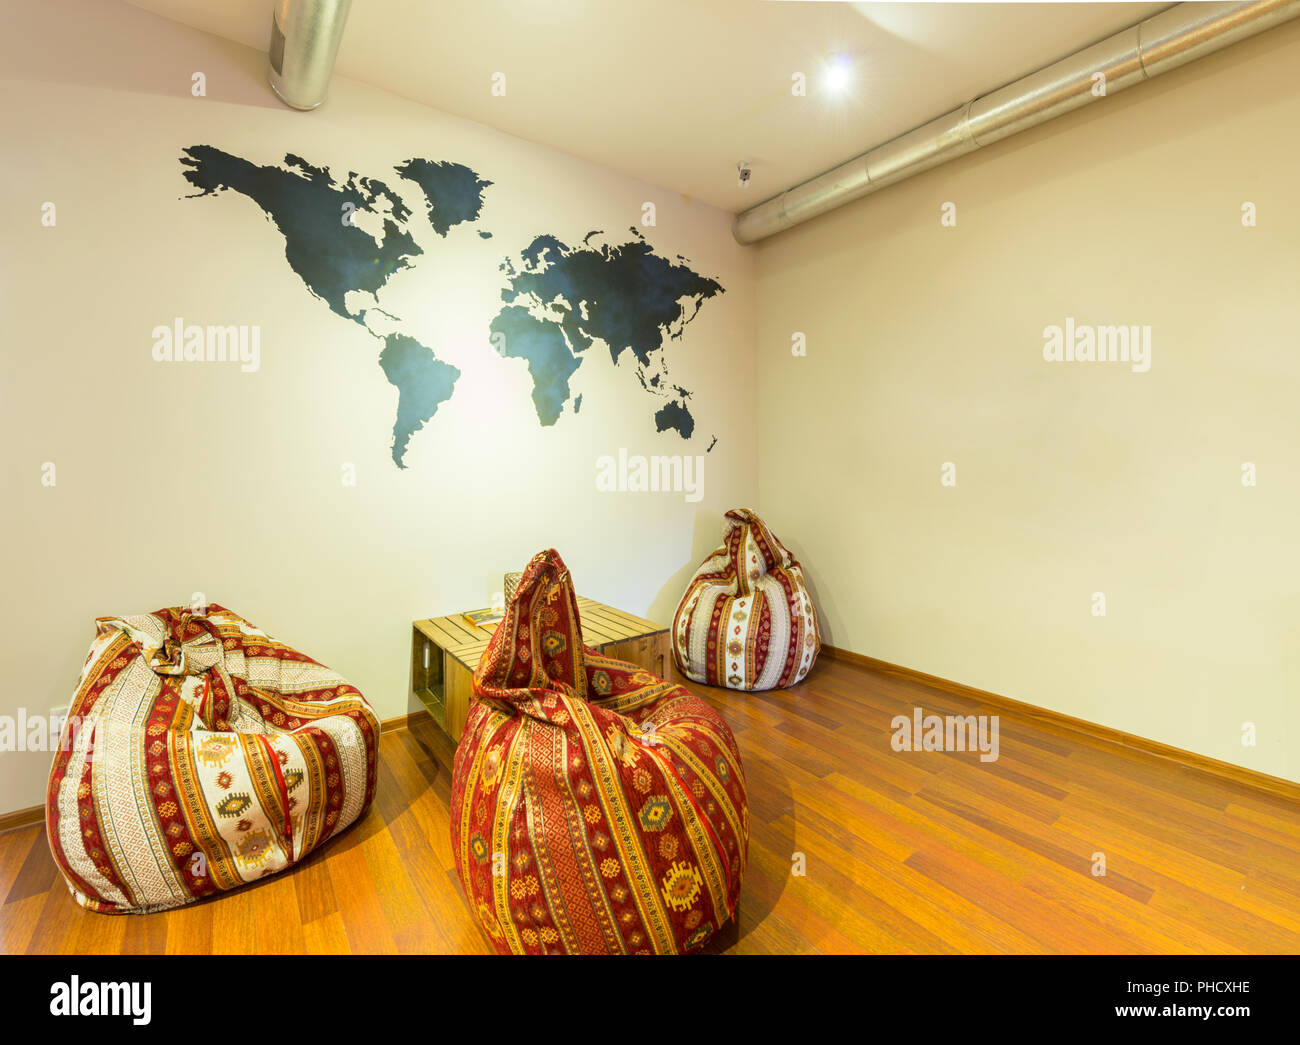 Waiting area in hotel with bean bag chairs - Stock Image